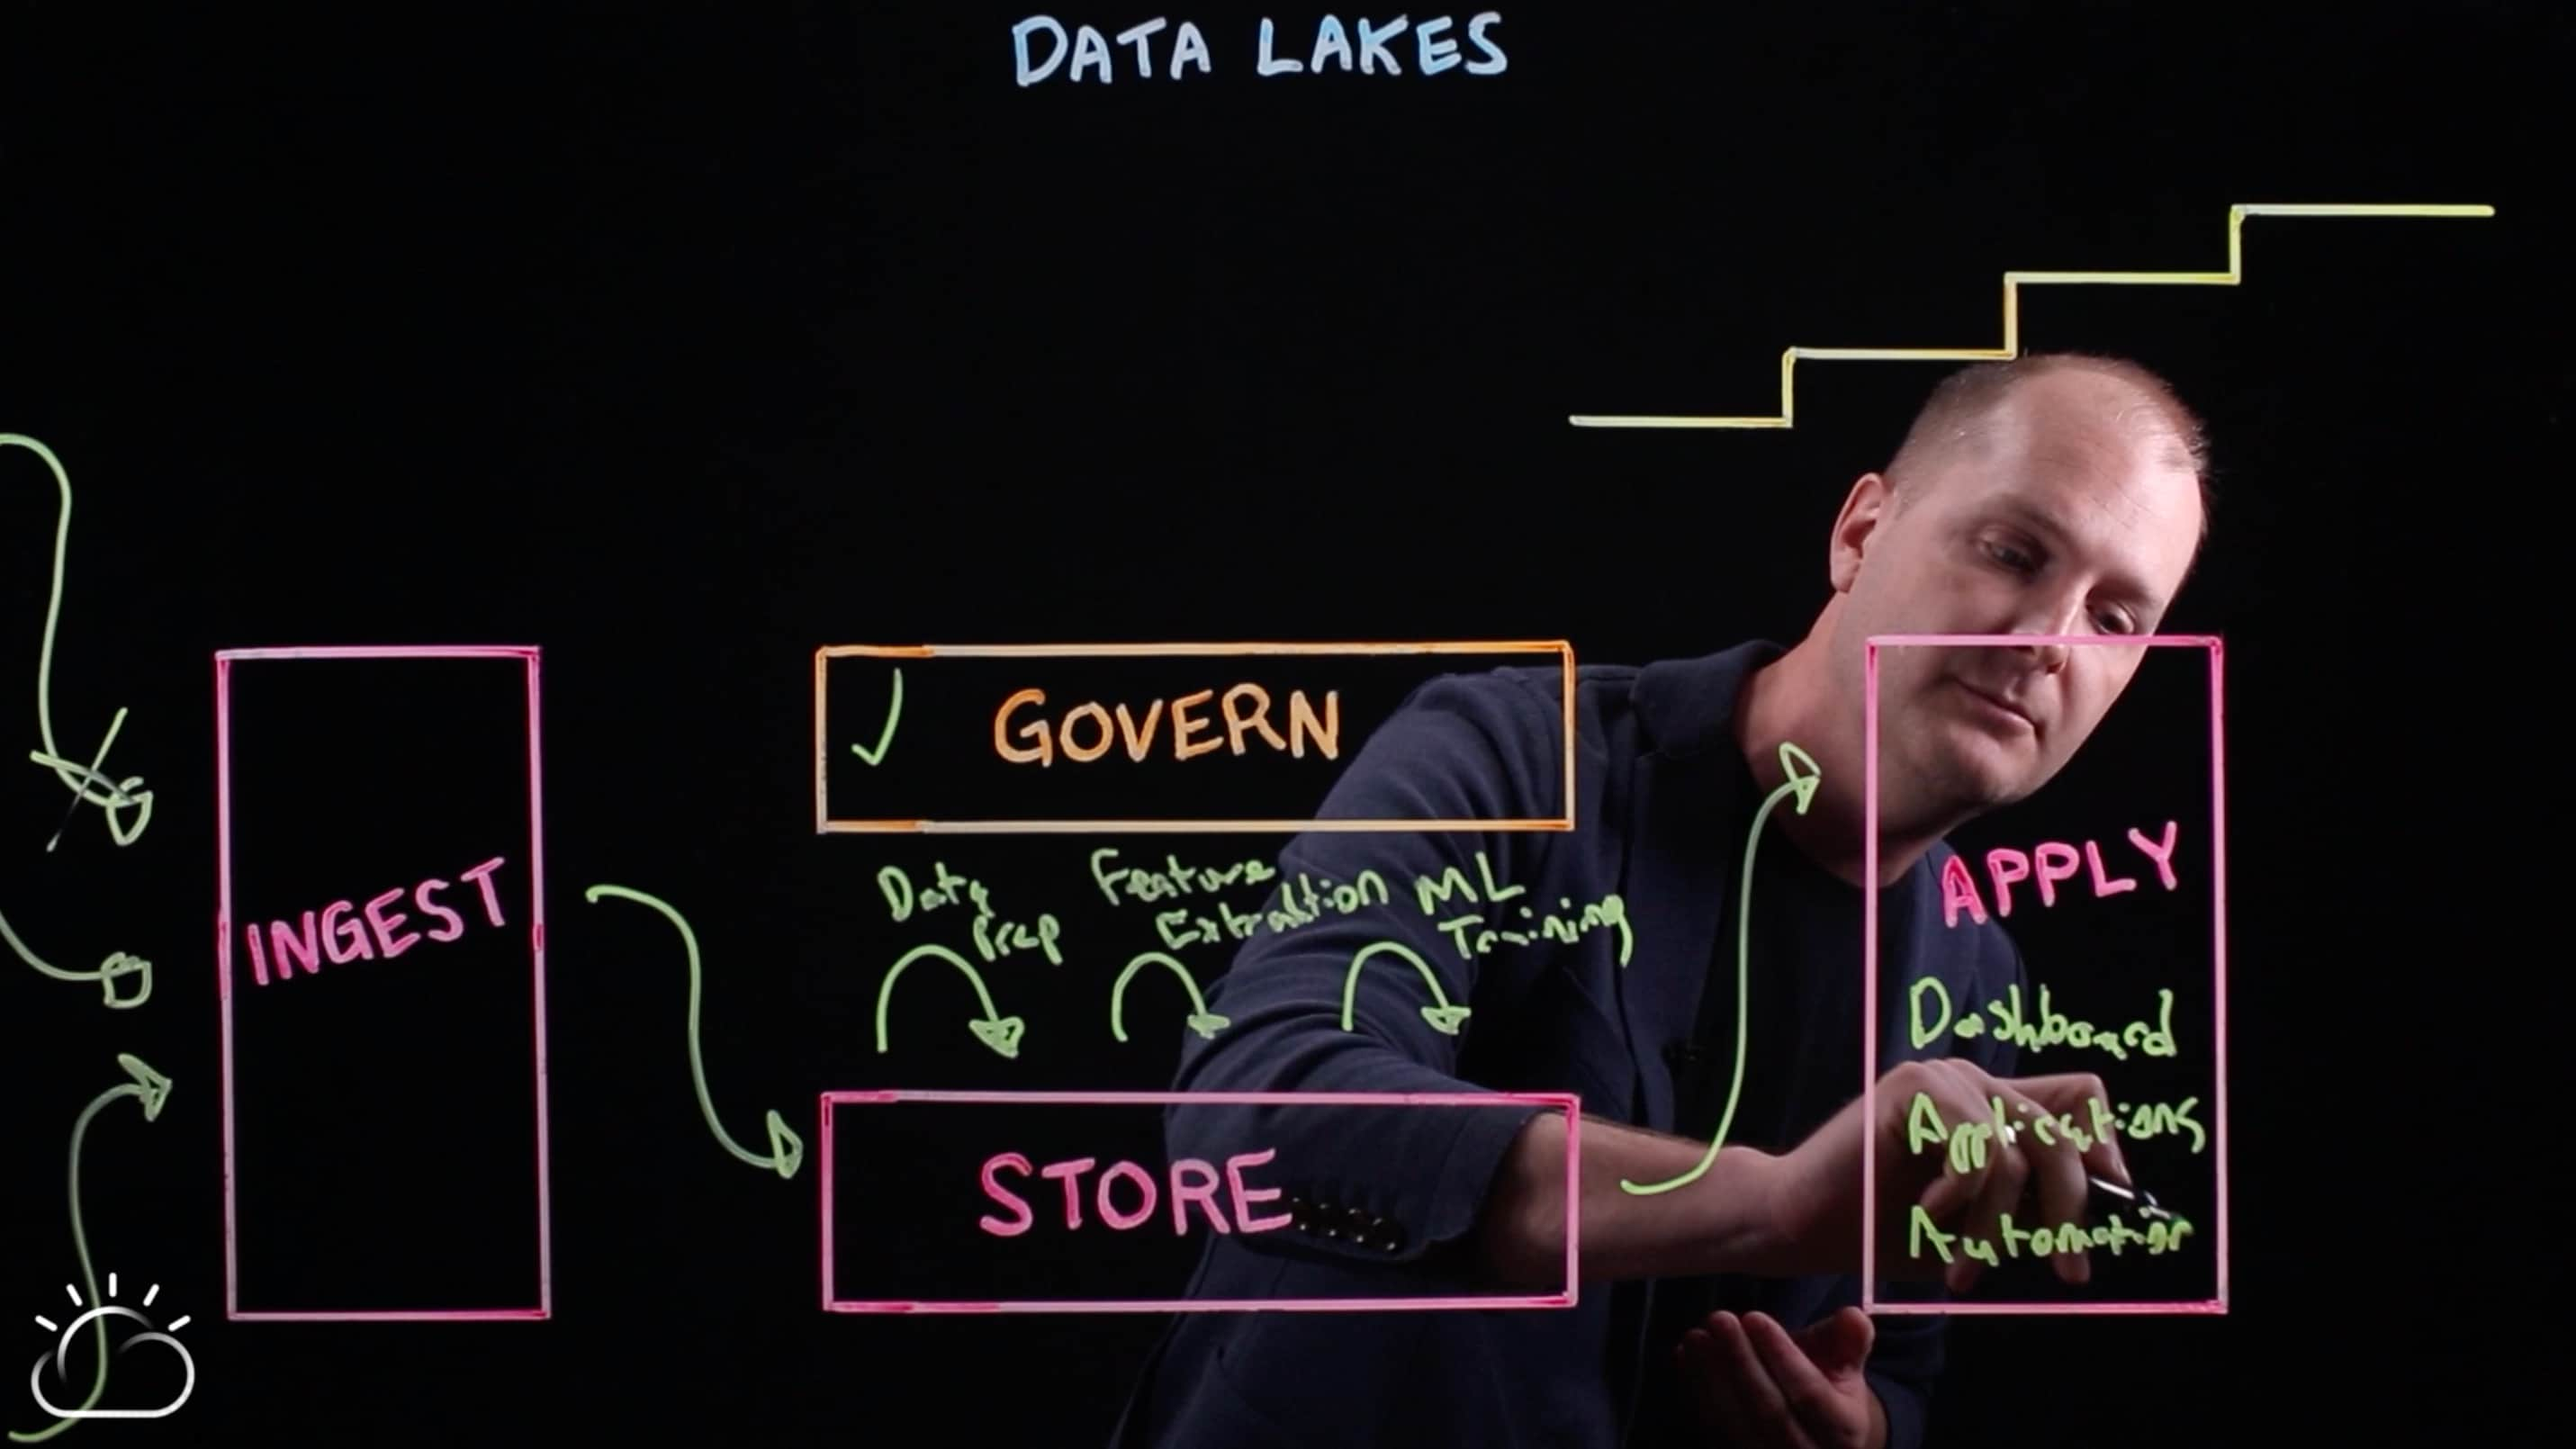 Data lake application to business promises